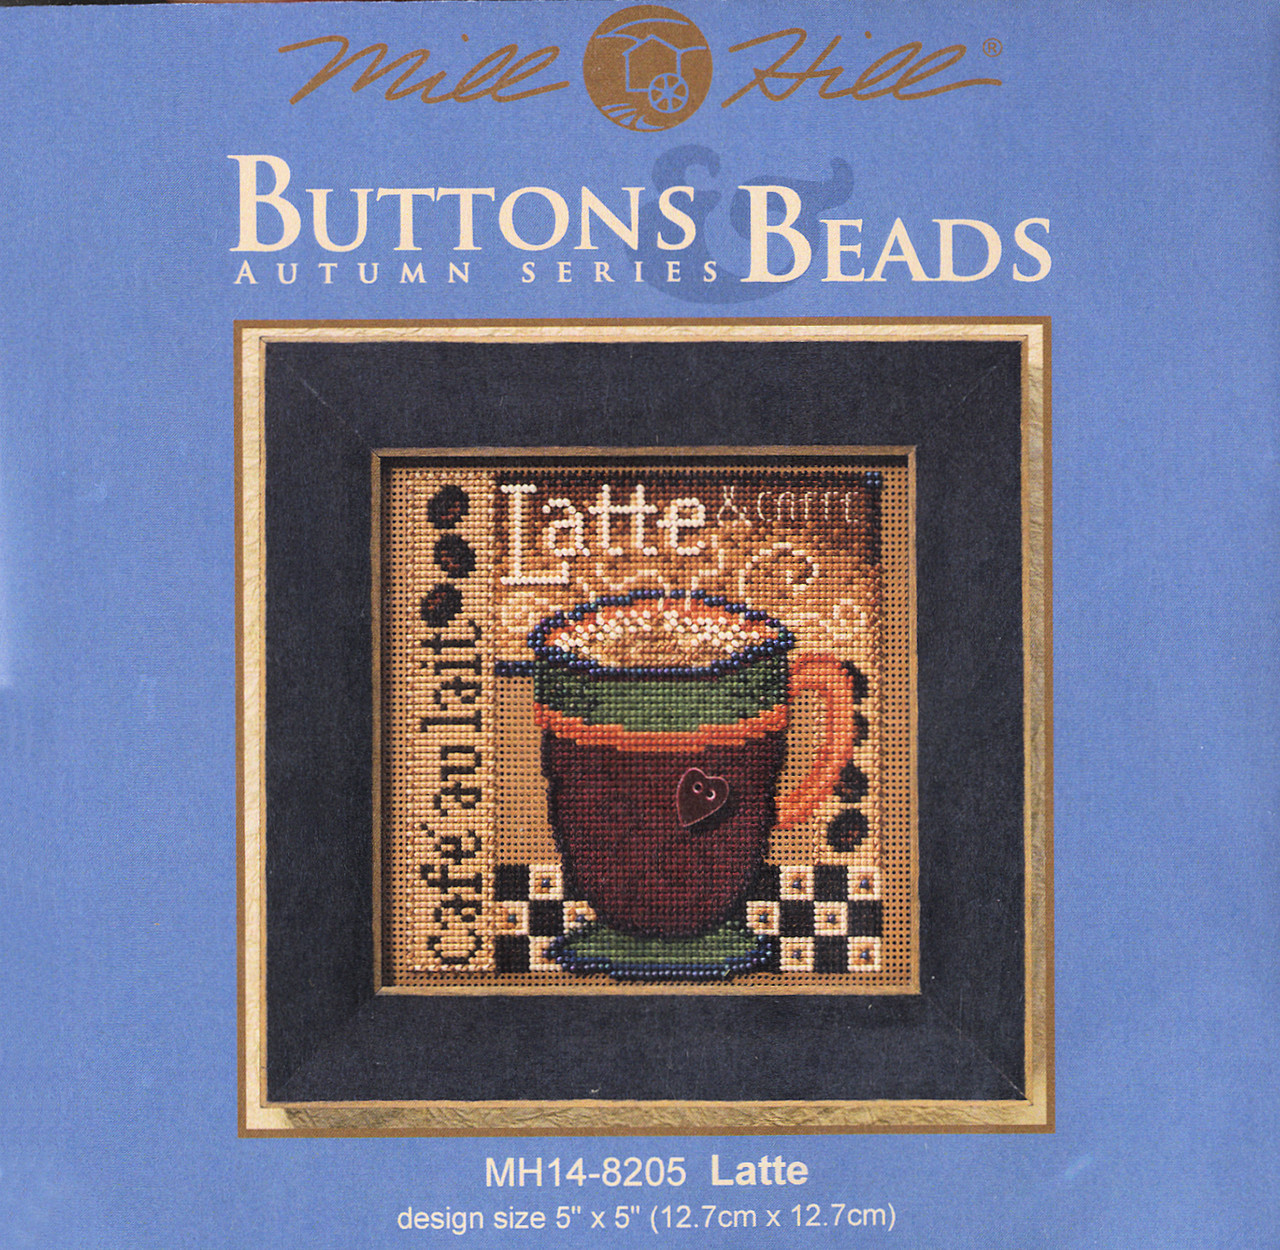 2008 Mill Hill Buttons & Beads Autumn Series- Latte